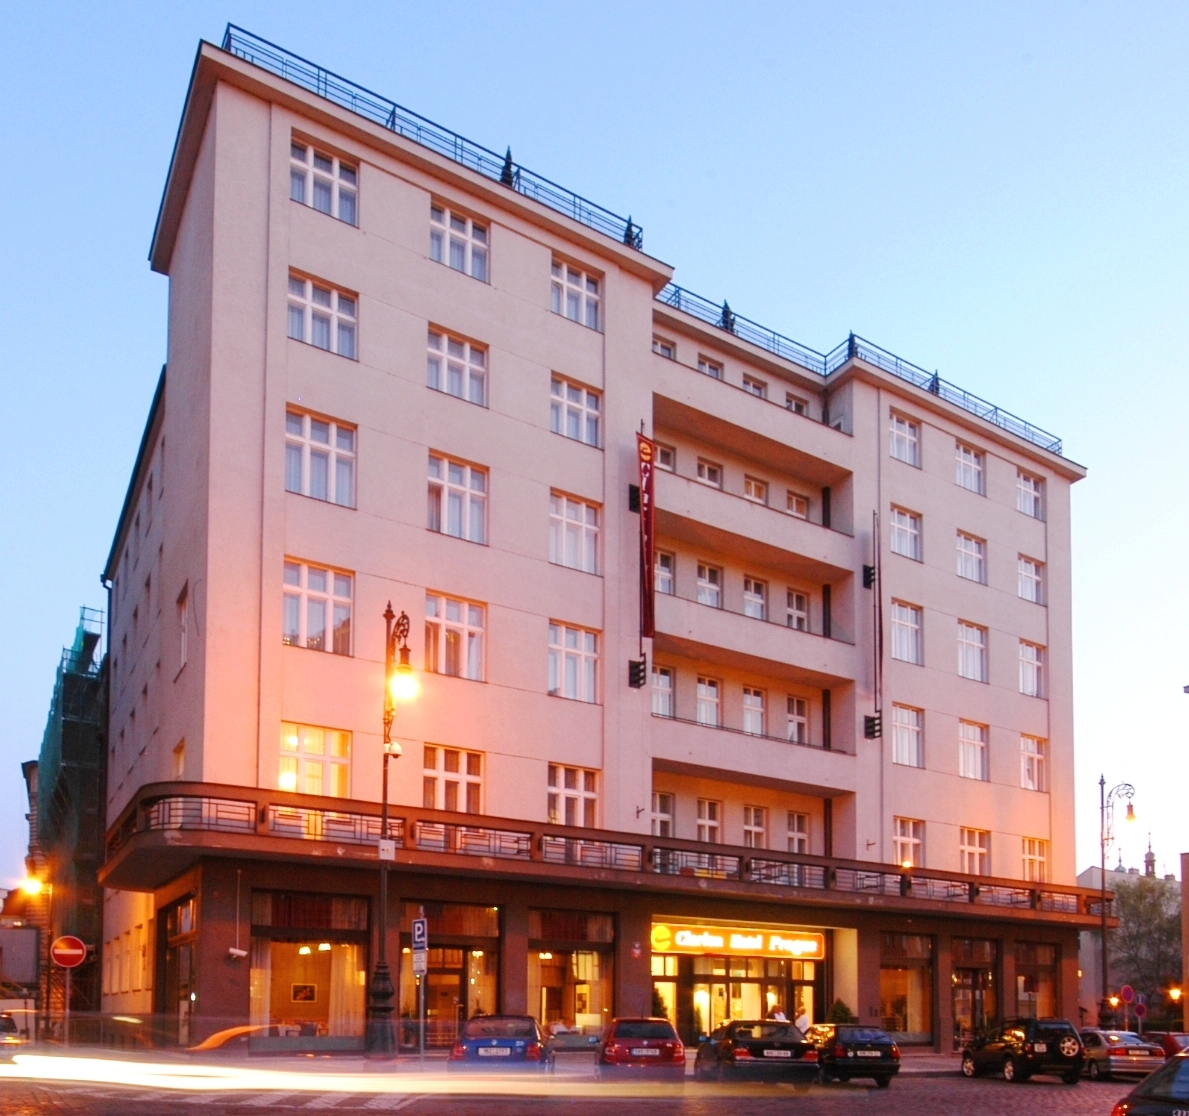 Clarion hotel prague old town praha turistick net for Hotels in prague old town